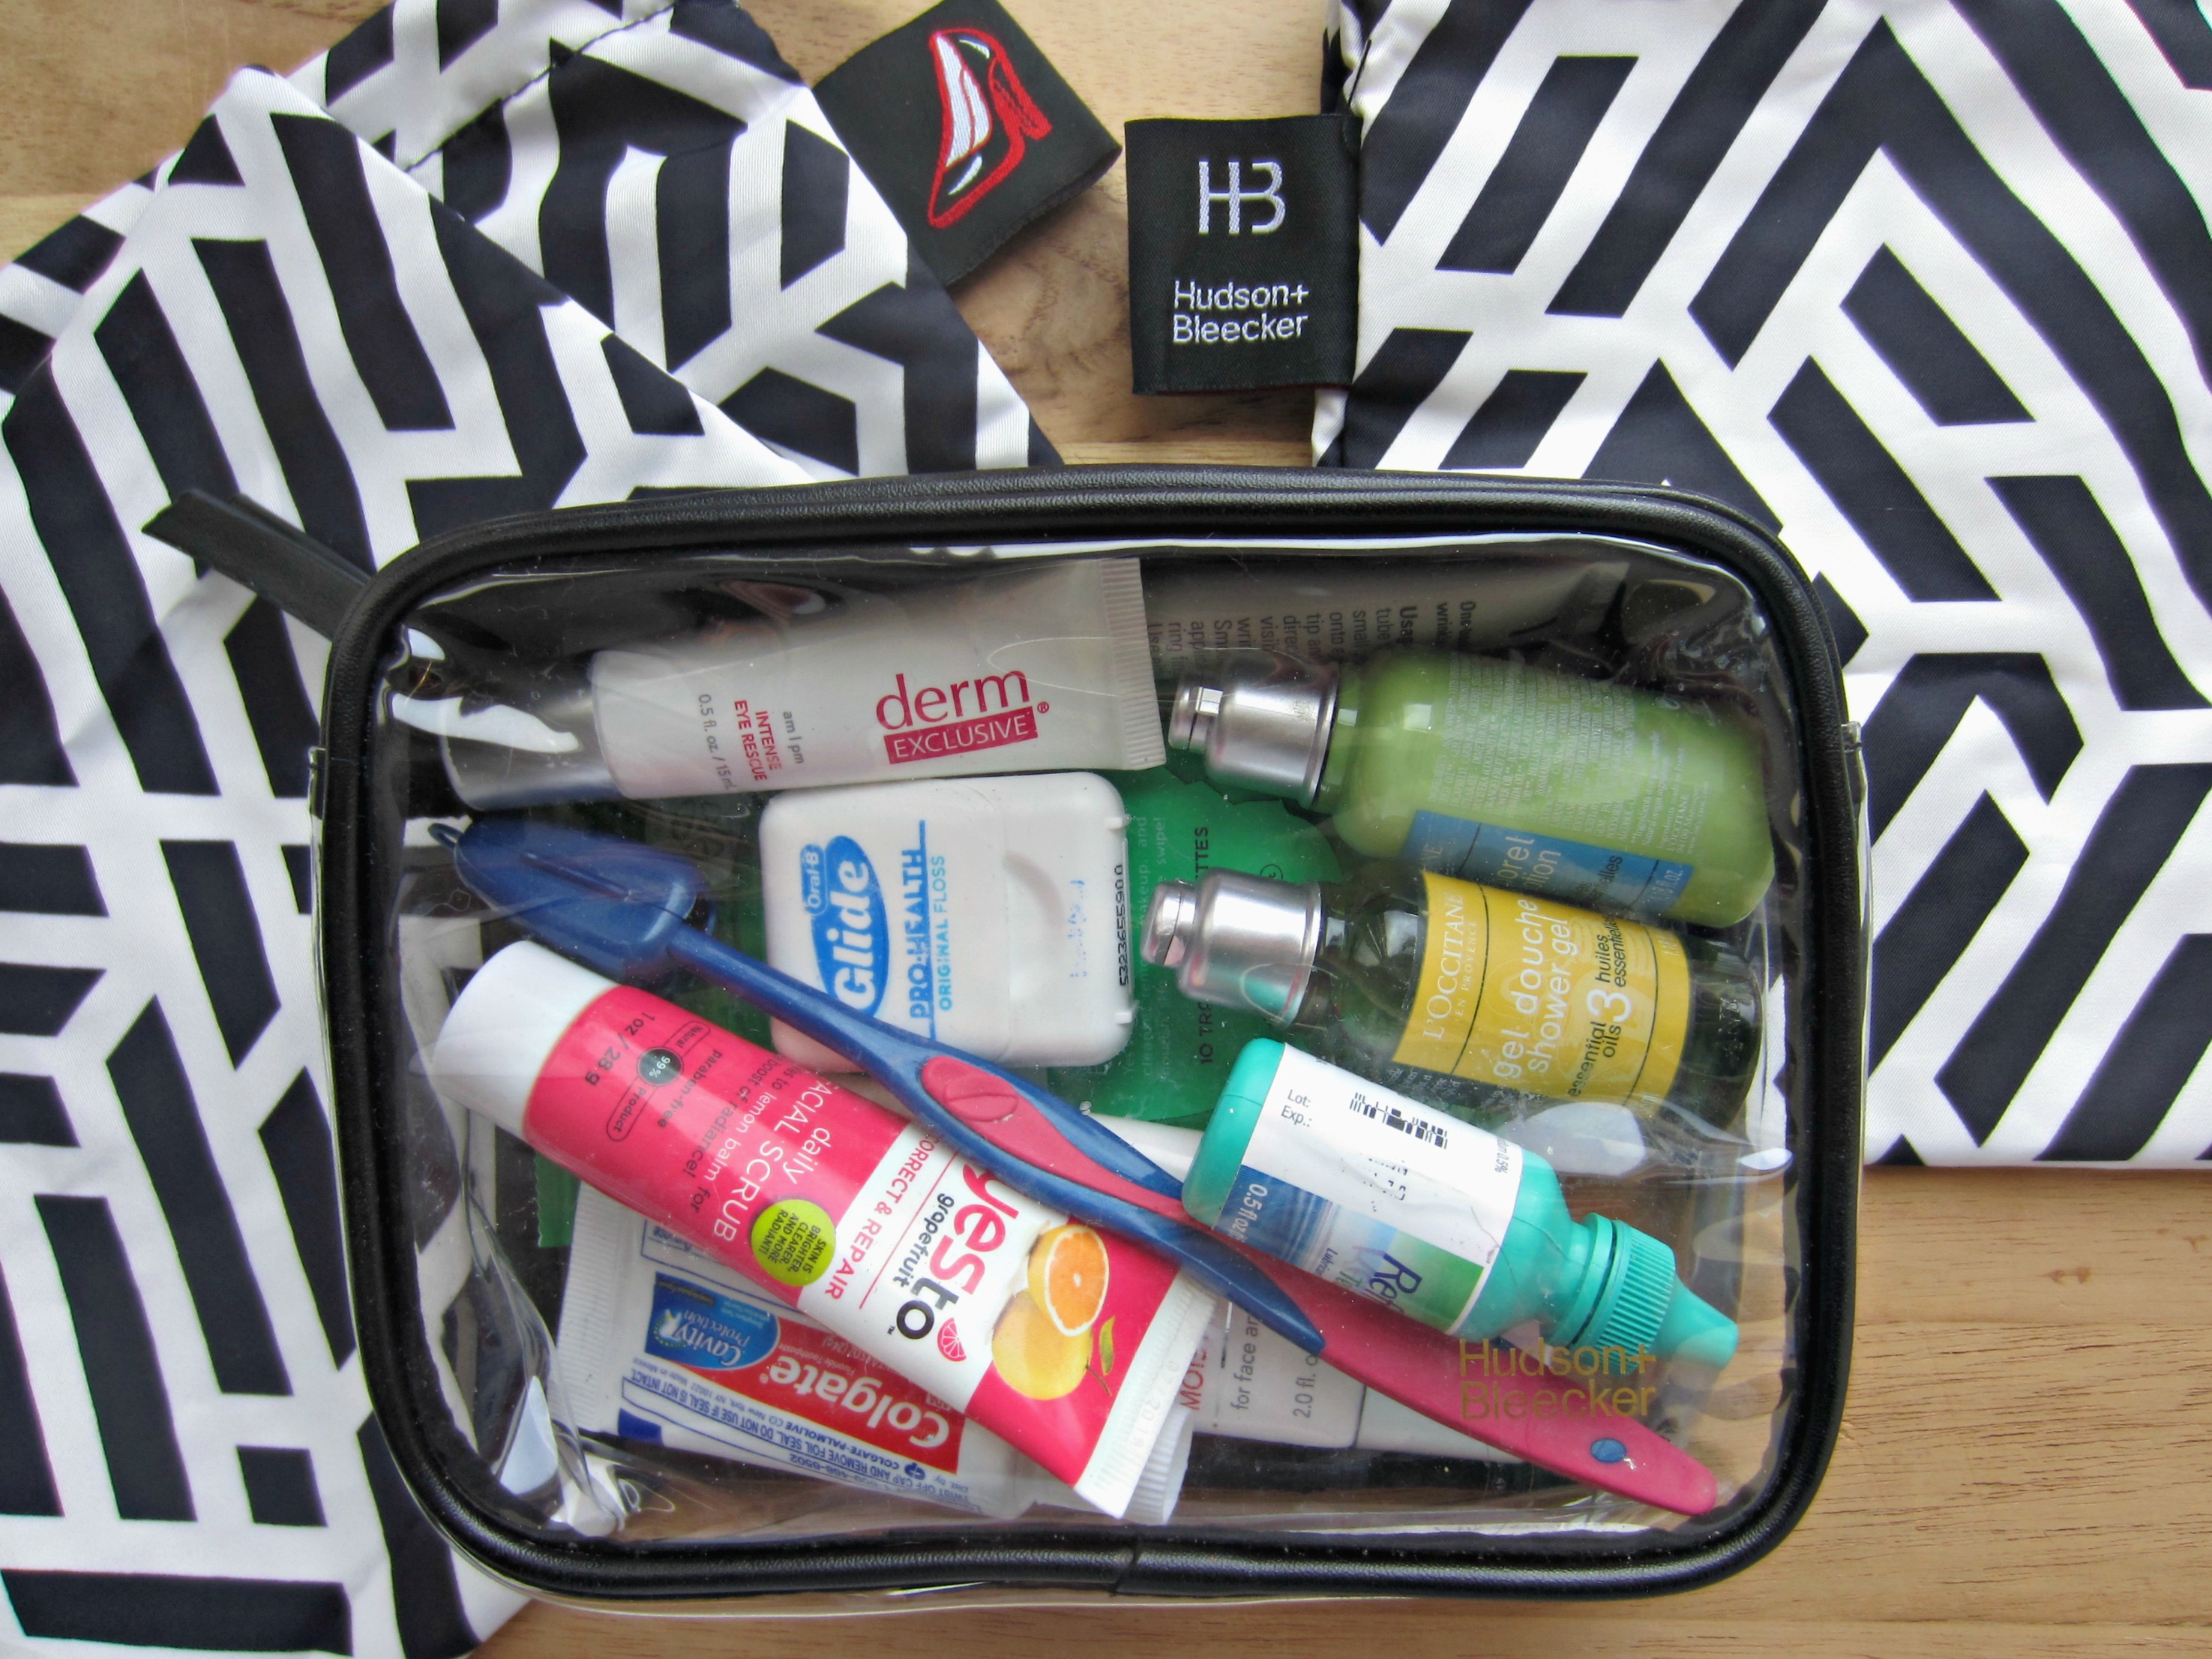 Hudson + Bleecker toiletry bag